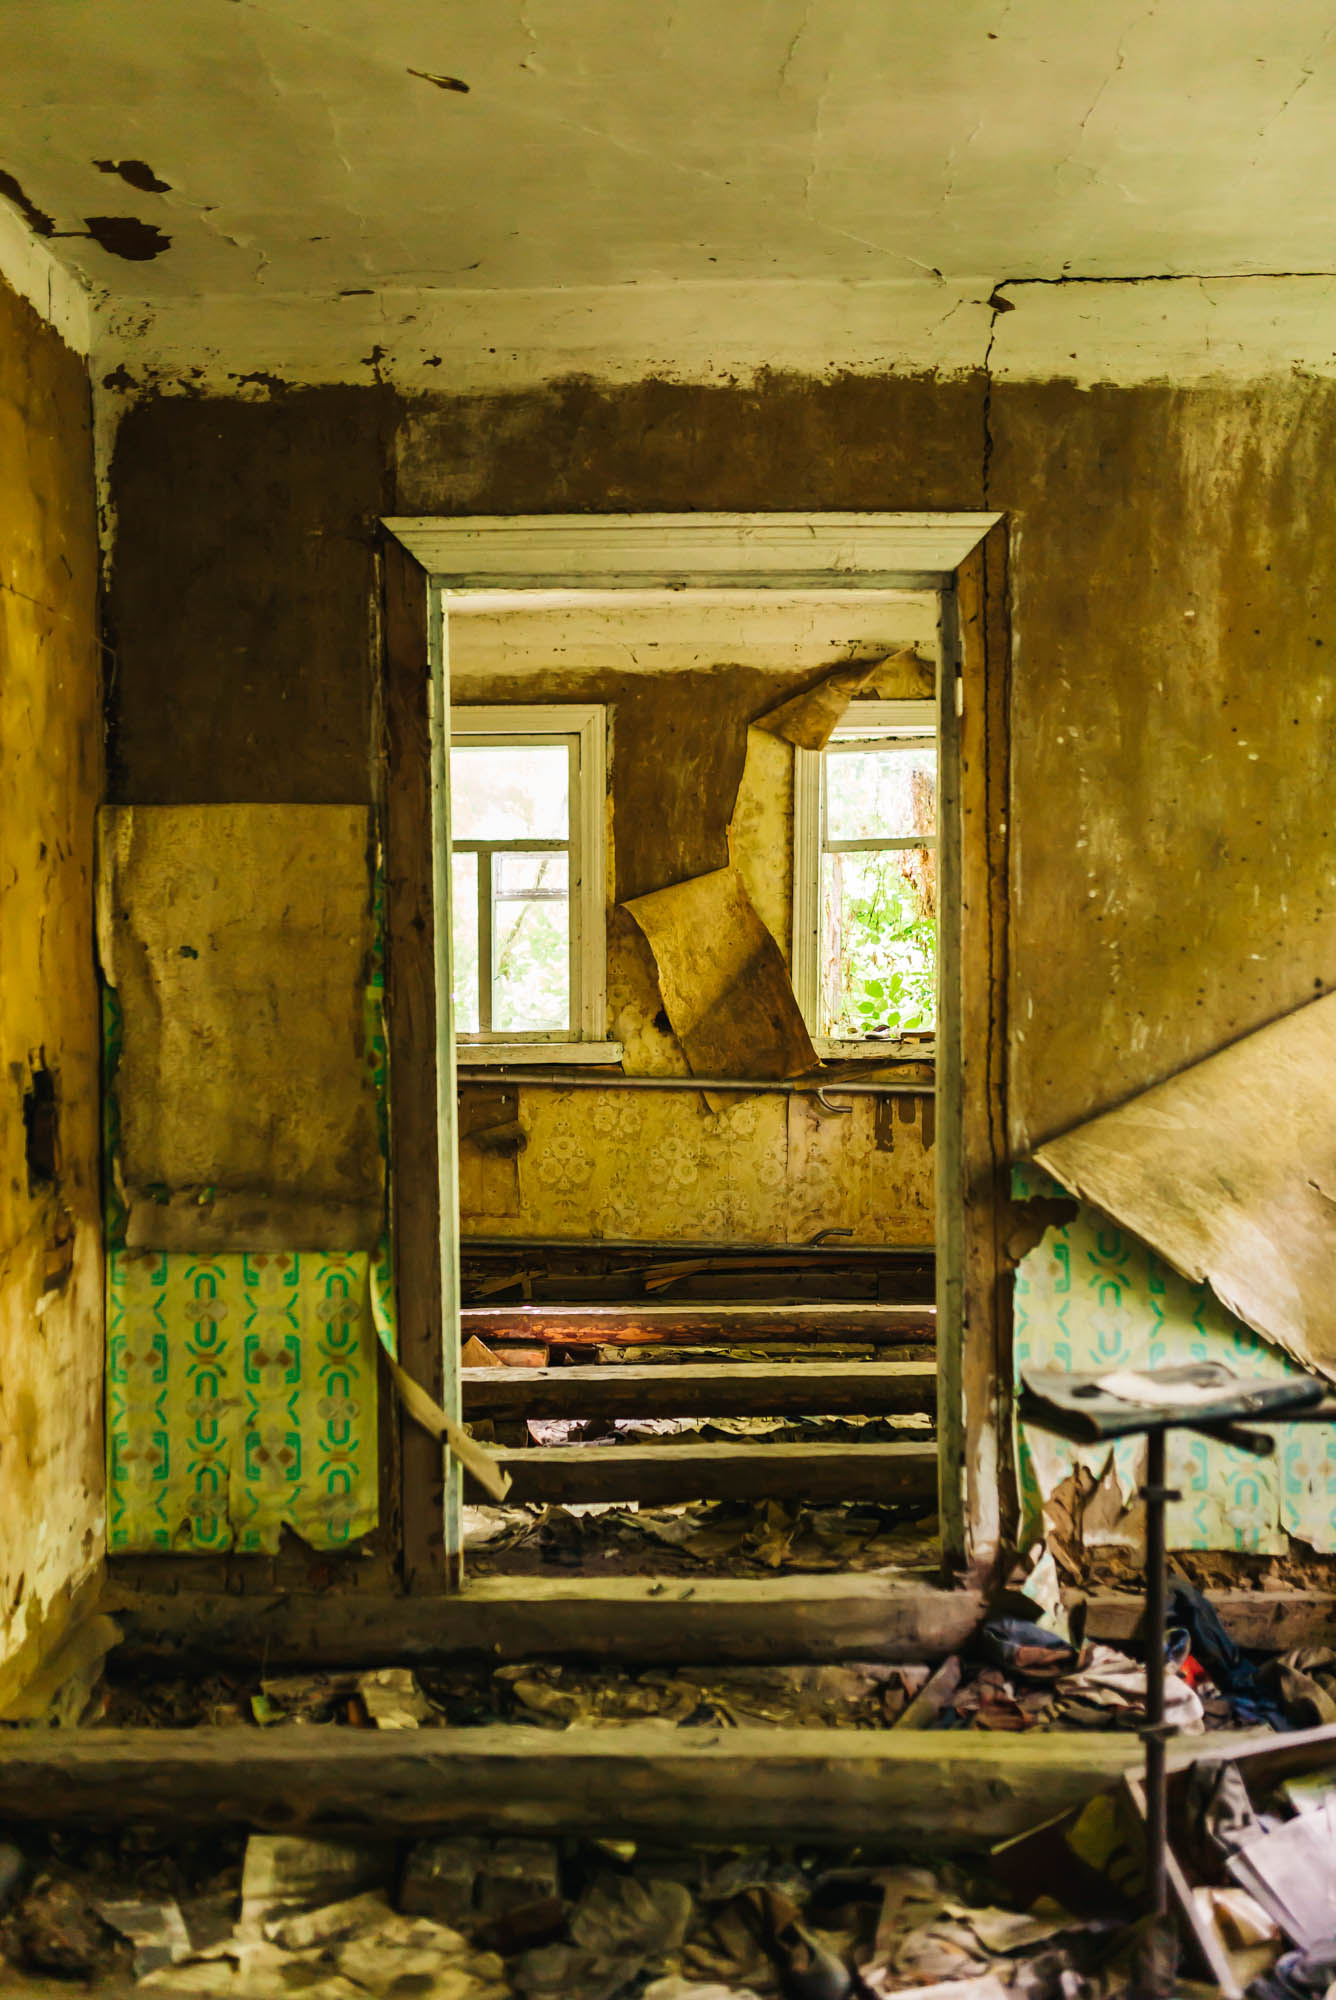 Inside of an abandoned home in Chernobyl